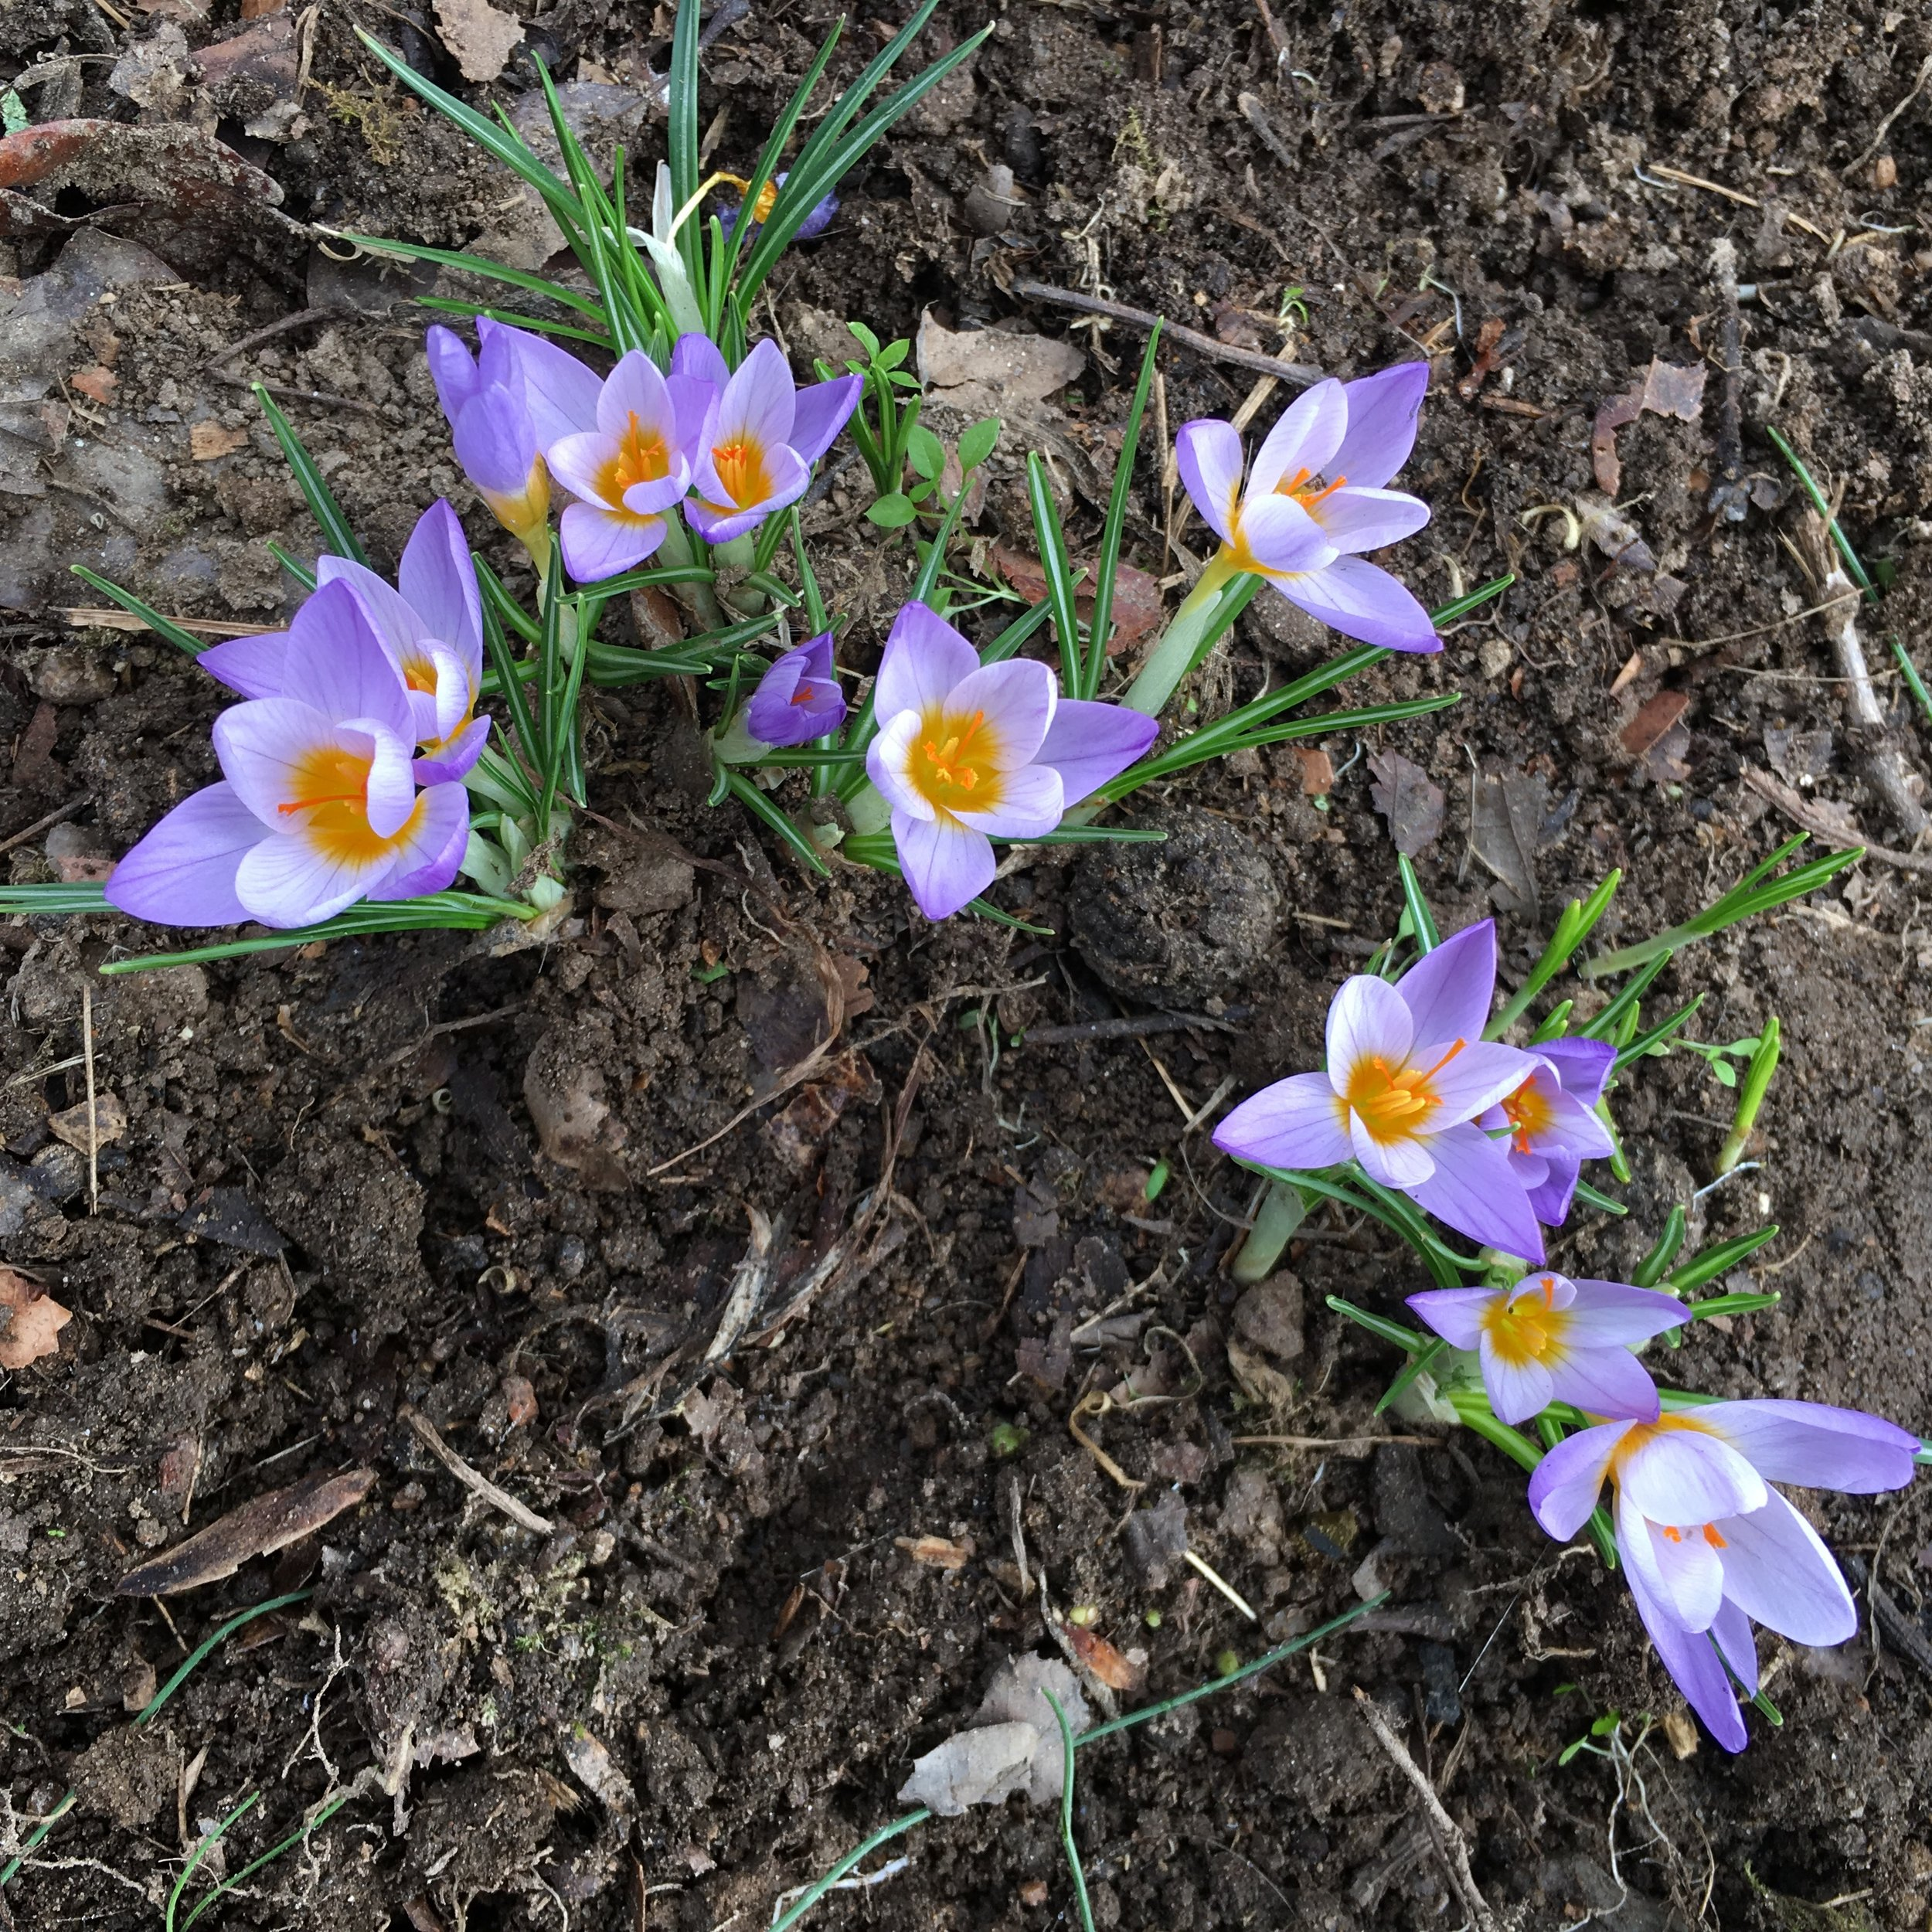 Crocuses in February